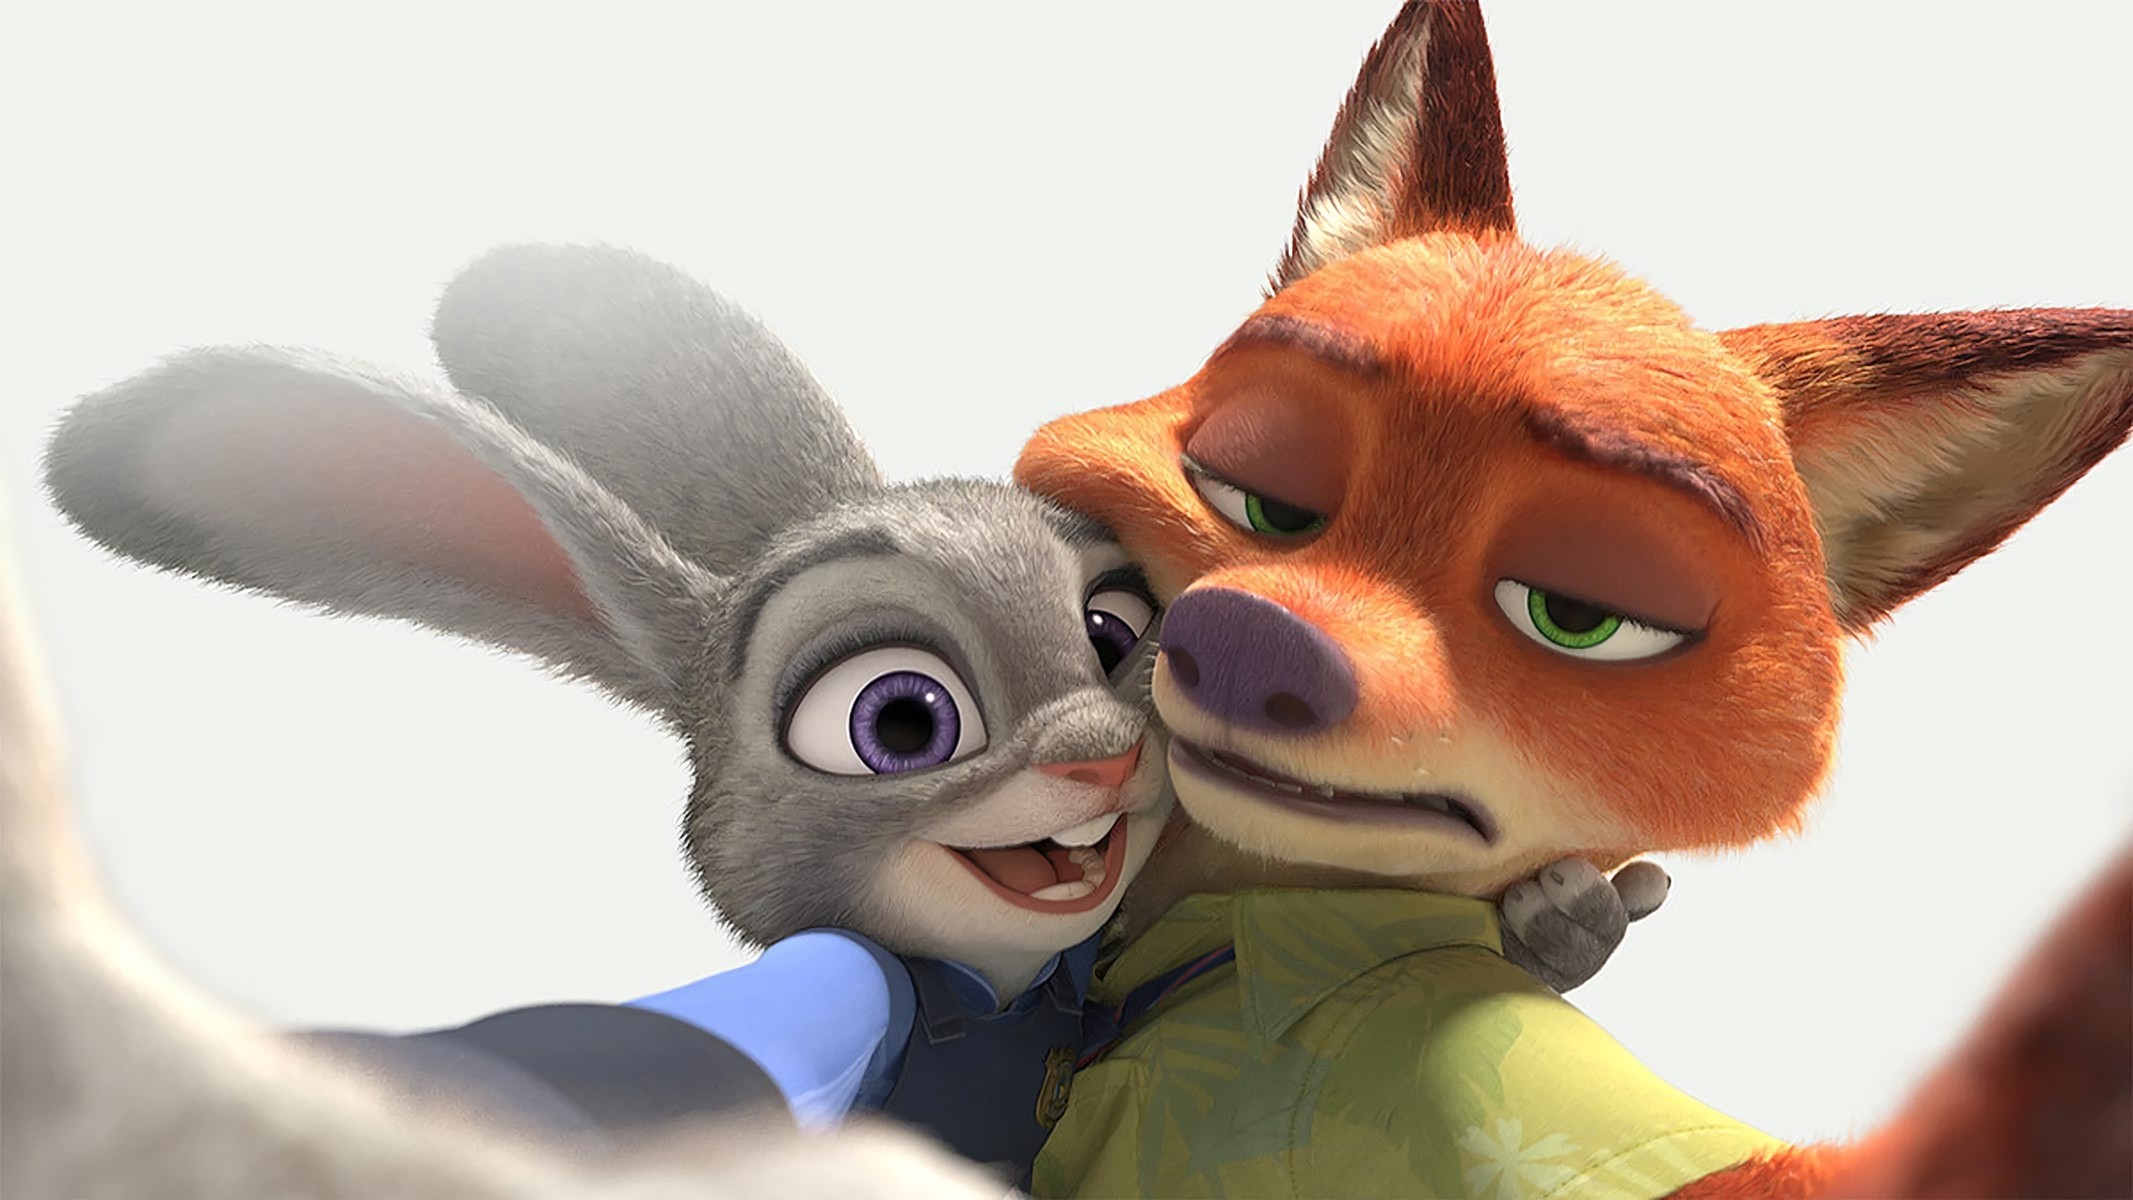 hd wallpaper background id703945 2133x1200 movie zootopia